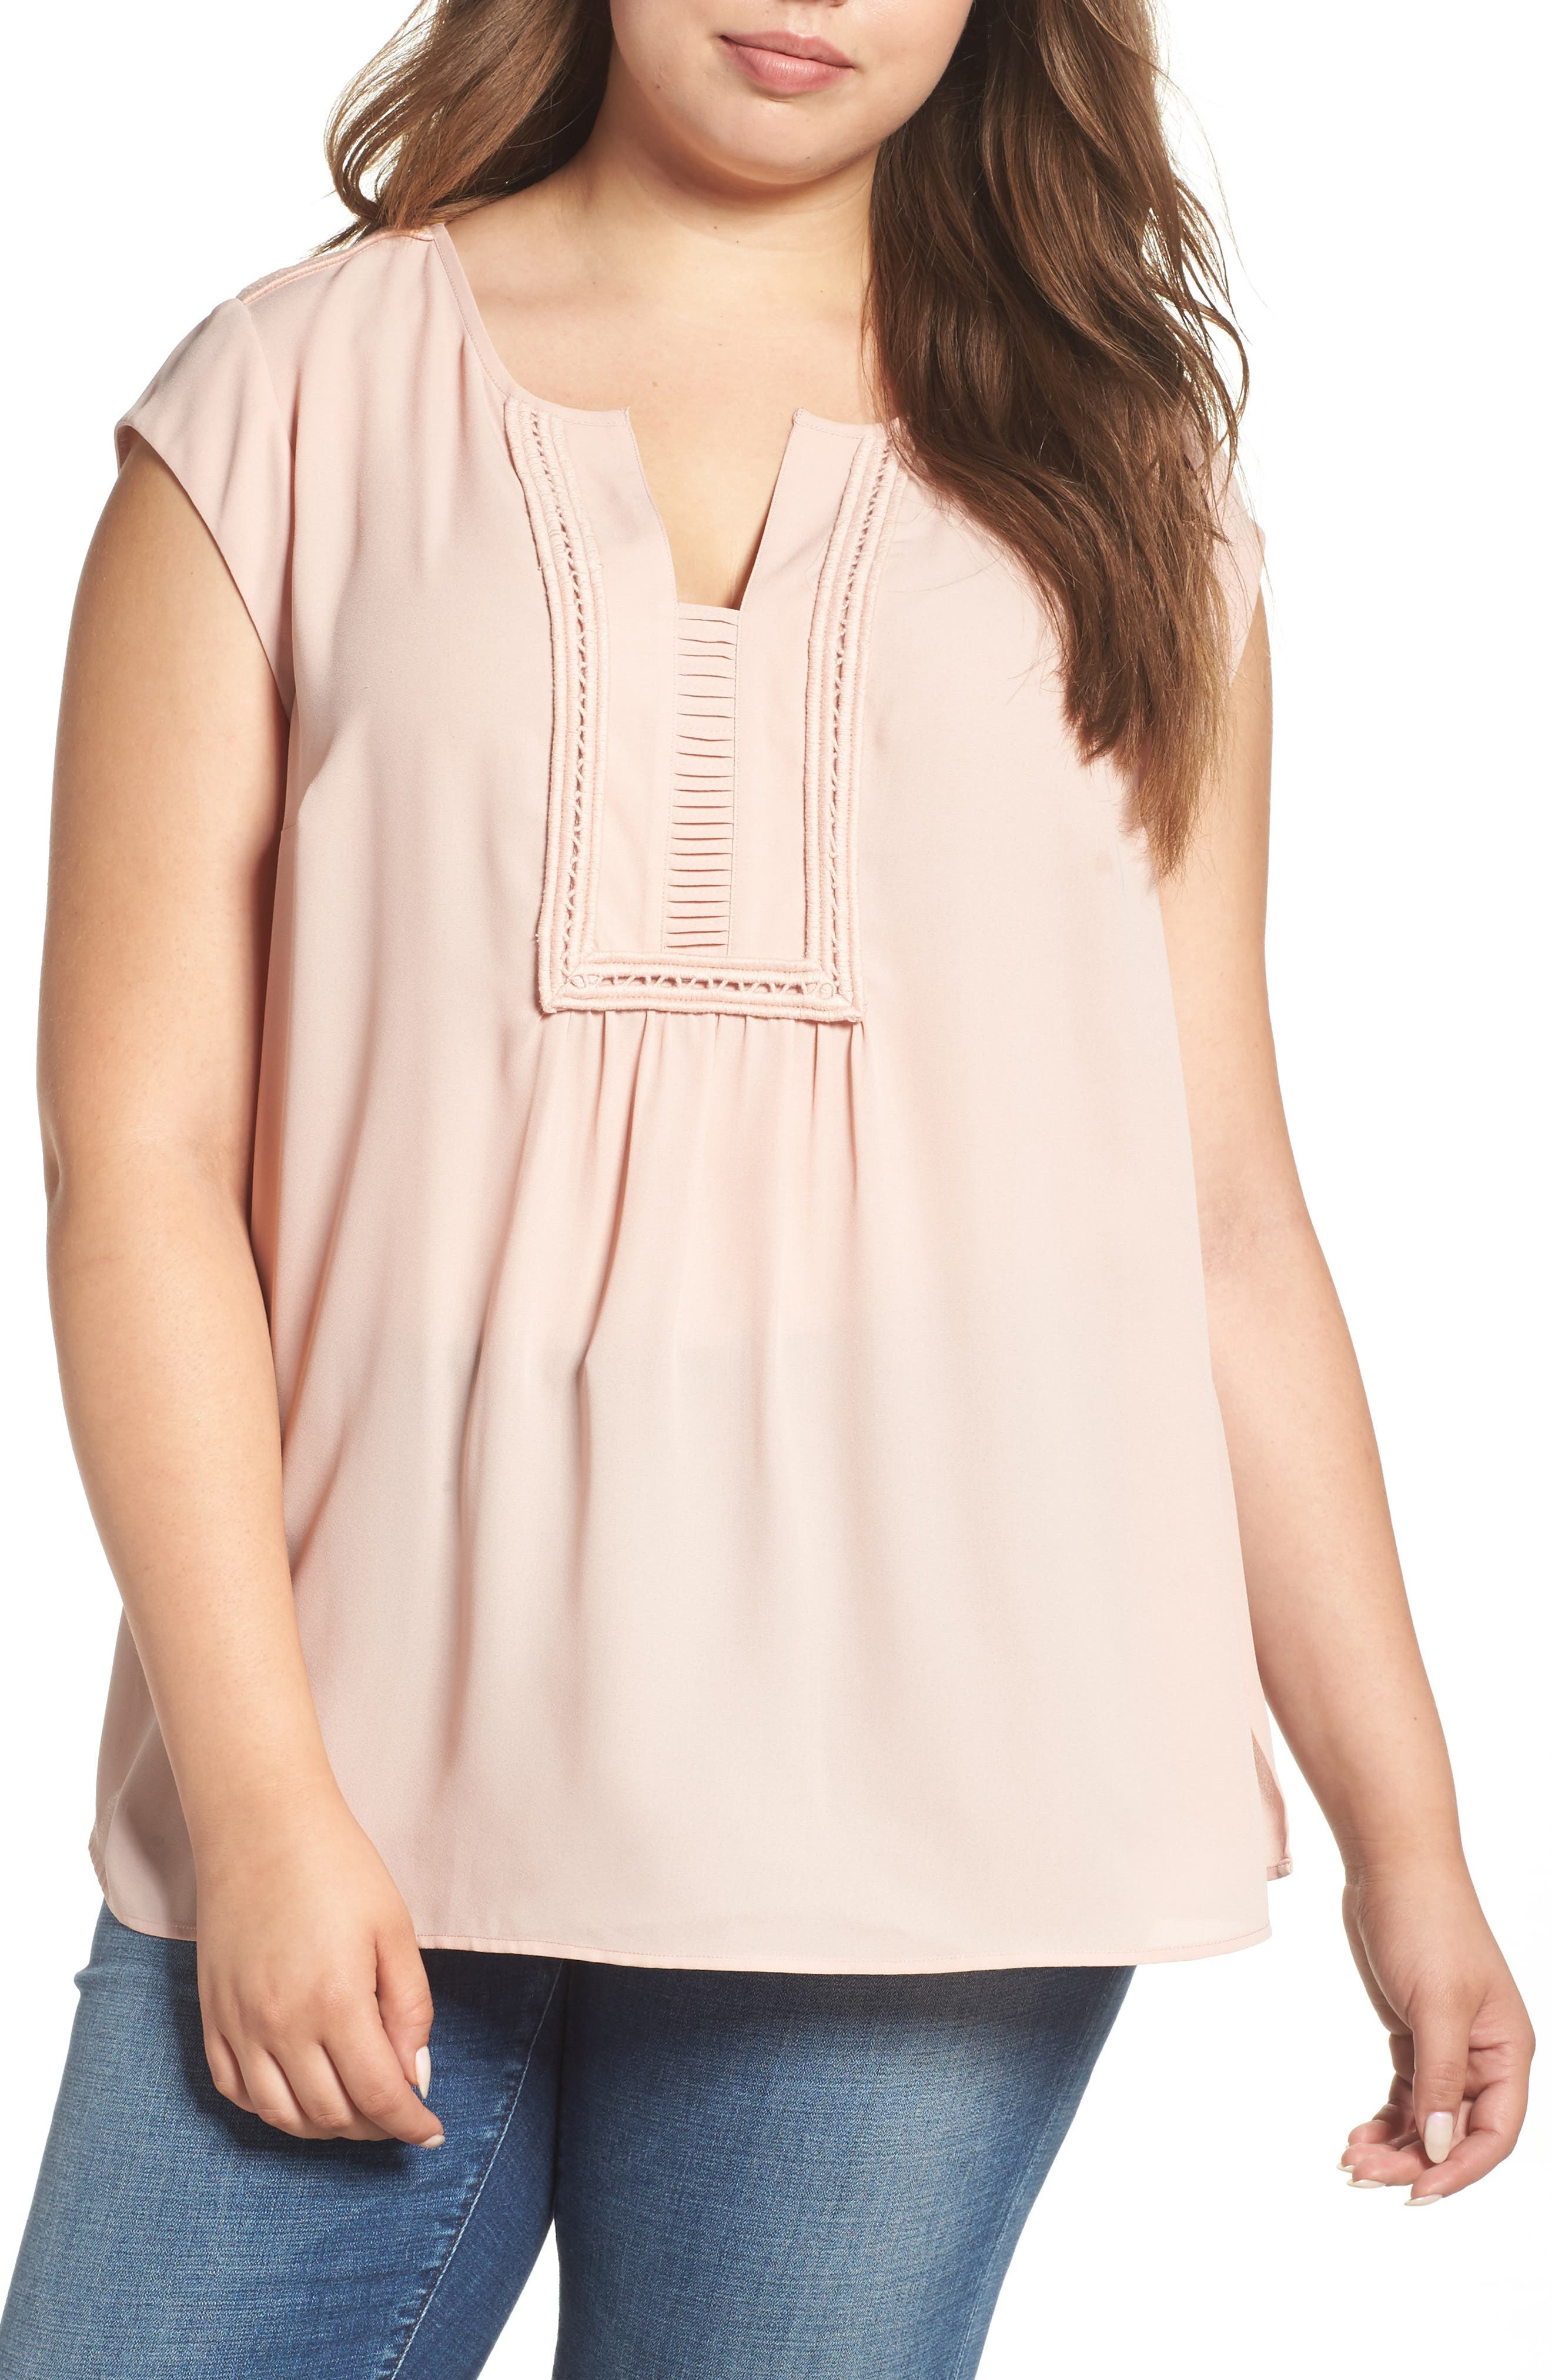 Daniel Rainn Embroidered Yoke Cap Sleeve Blouse (Plus Size)